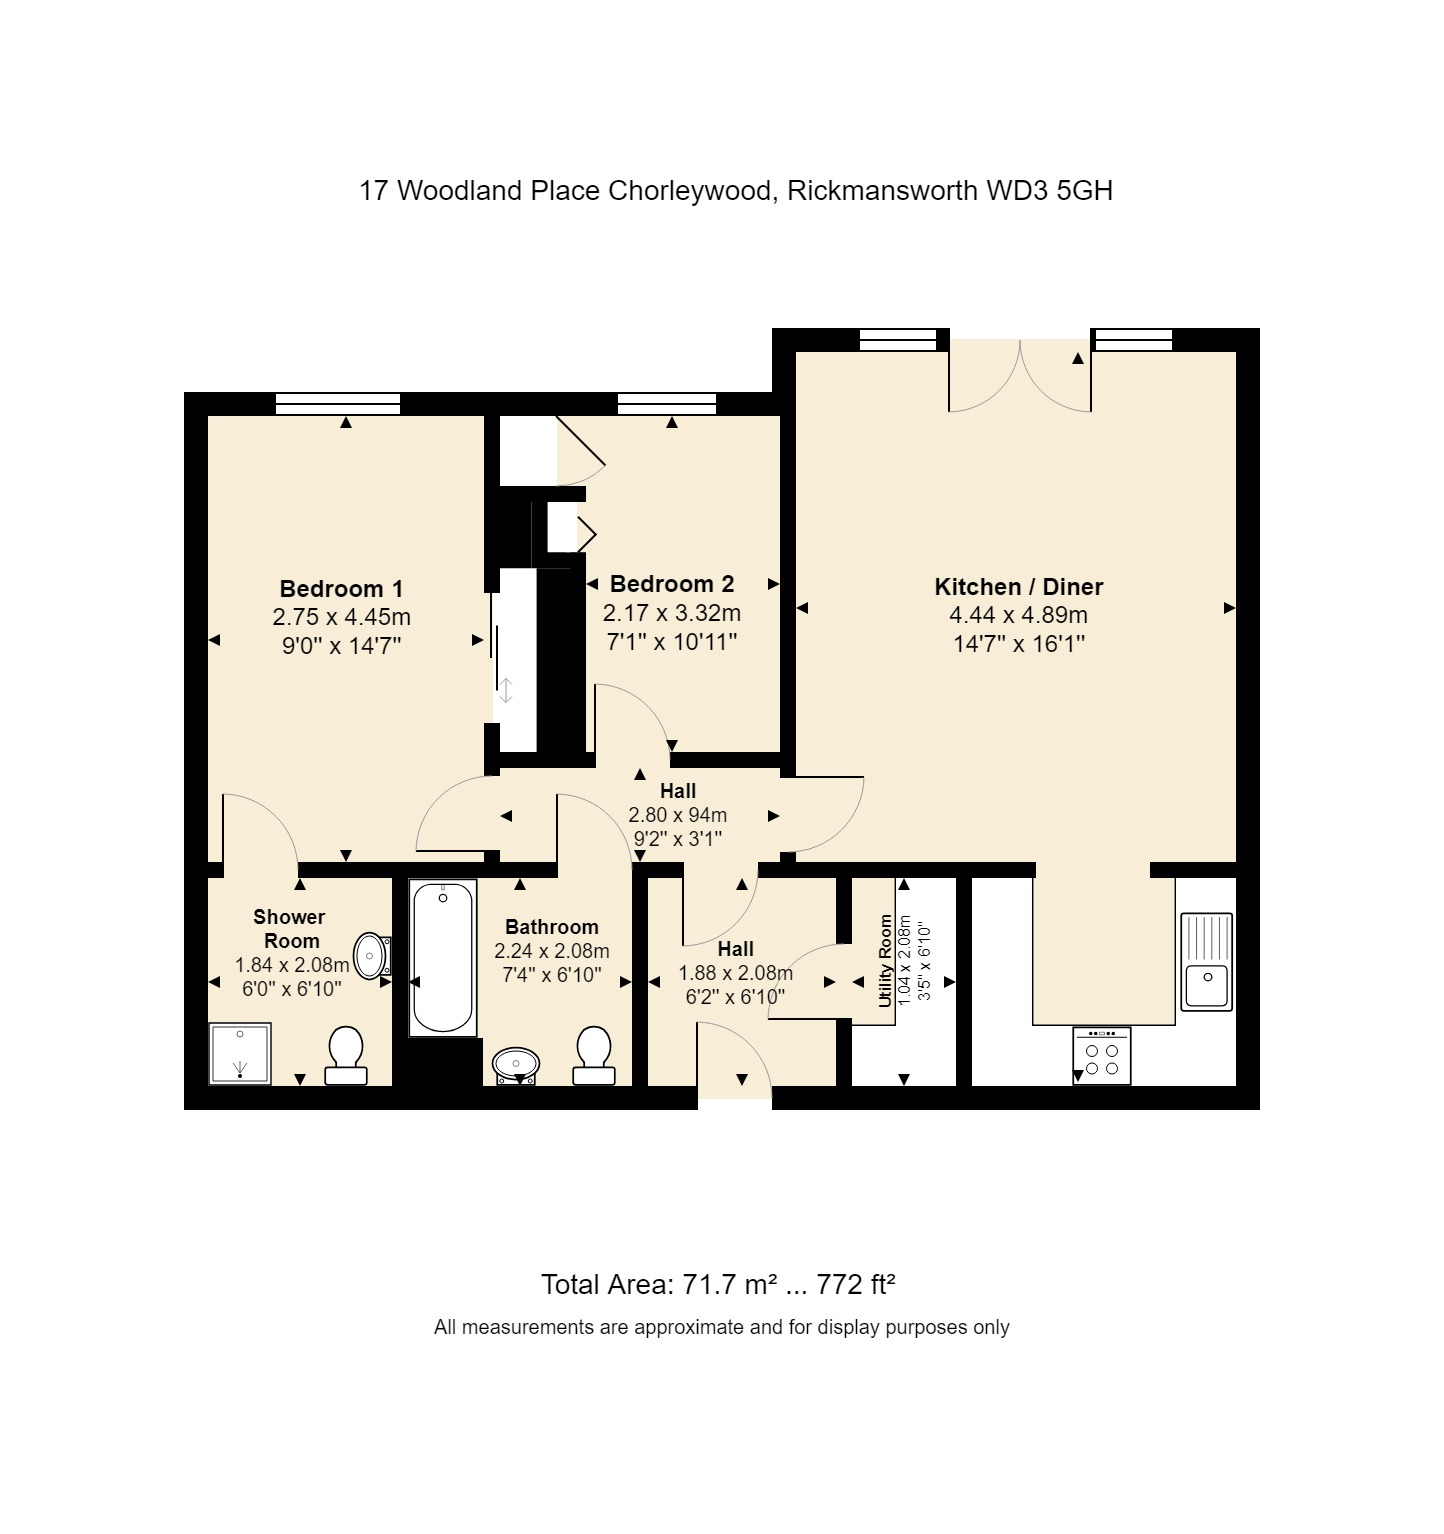 17 Woodland Place Floorplan